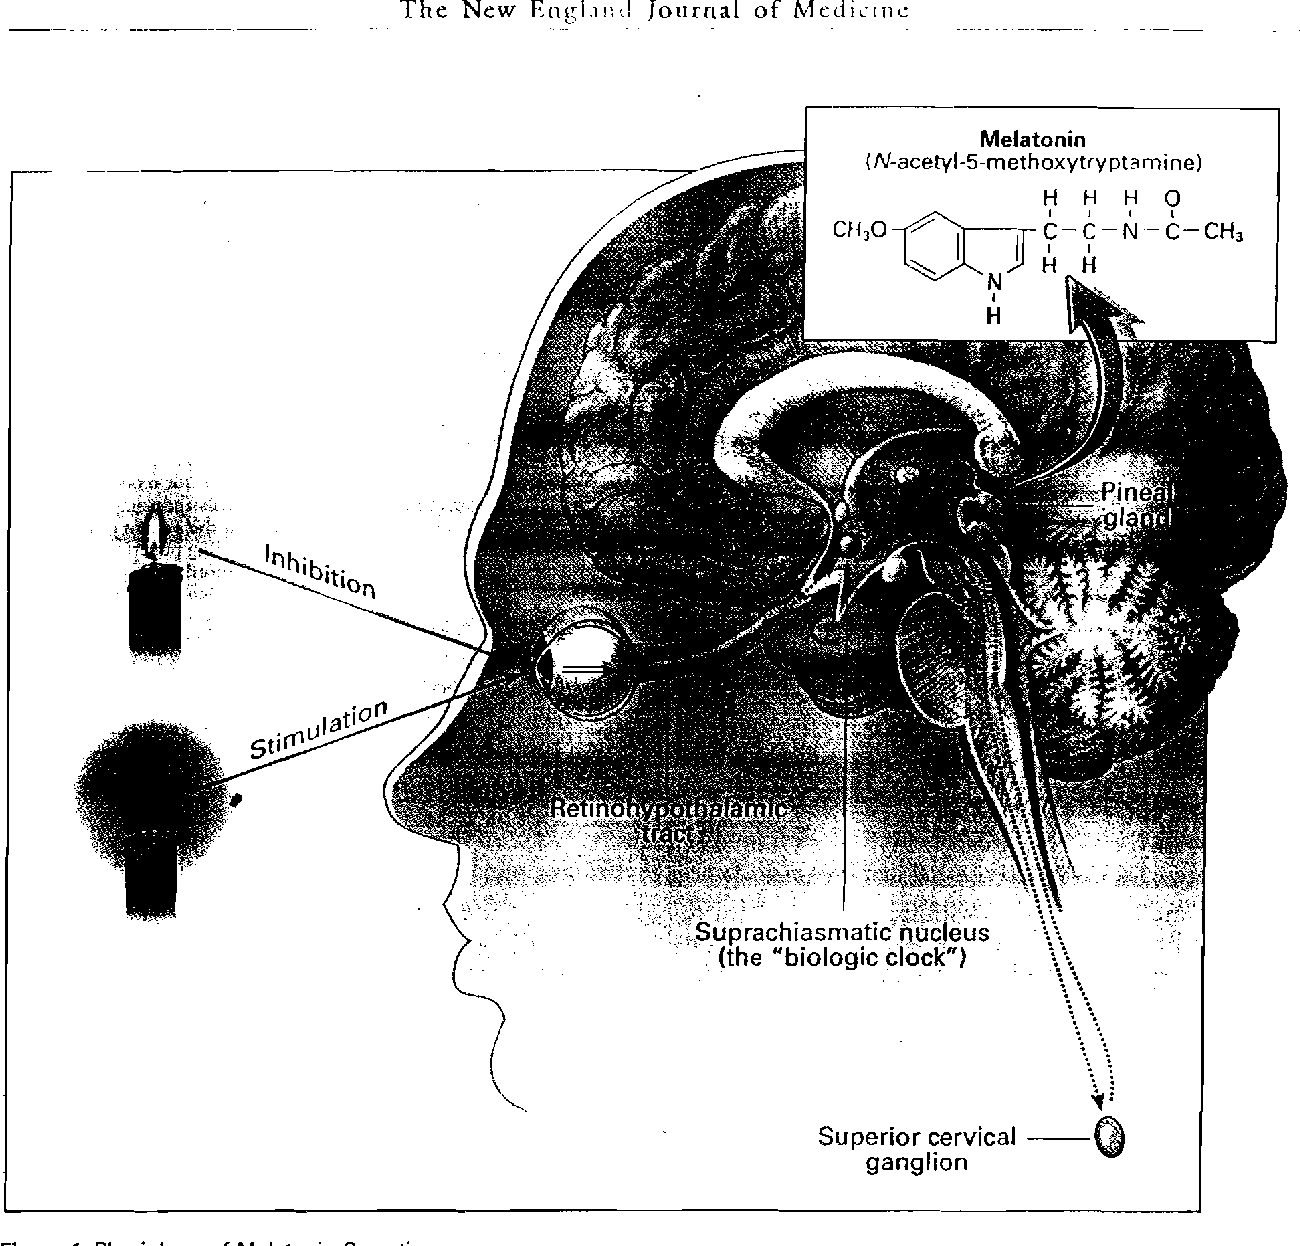 Evidence For An Effect Of Elf Electromagnetic Fields On Human Pineal